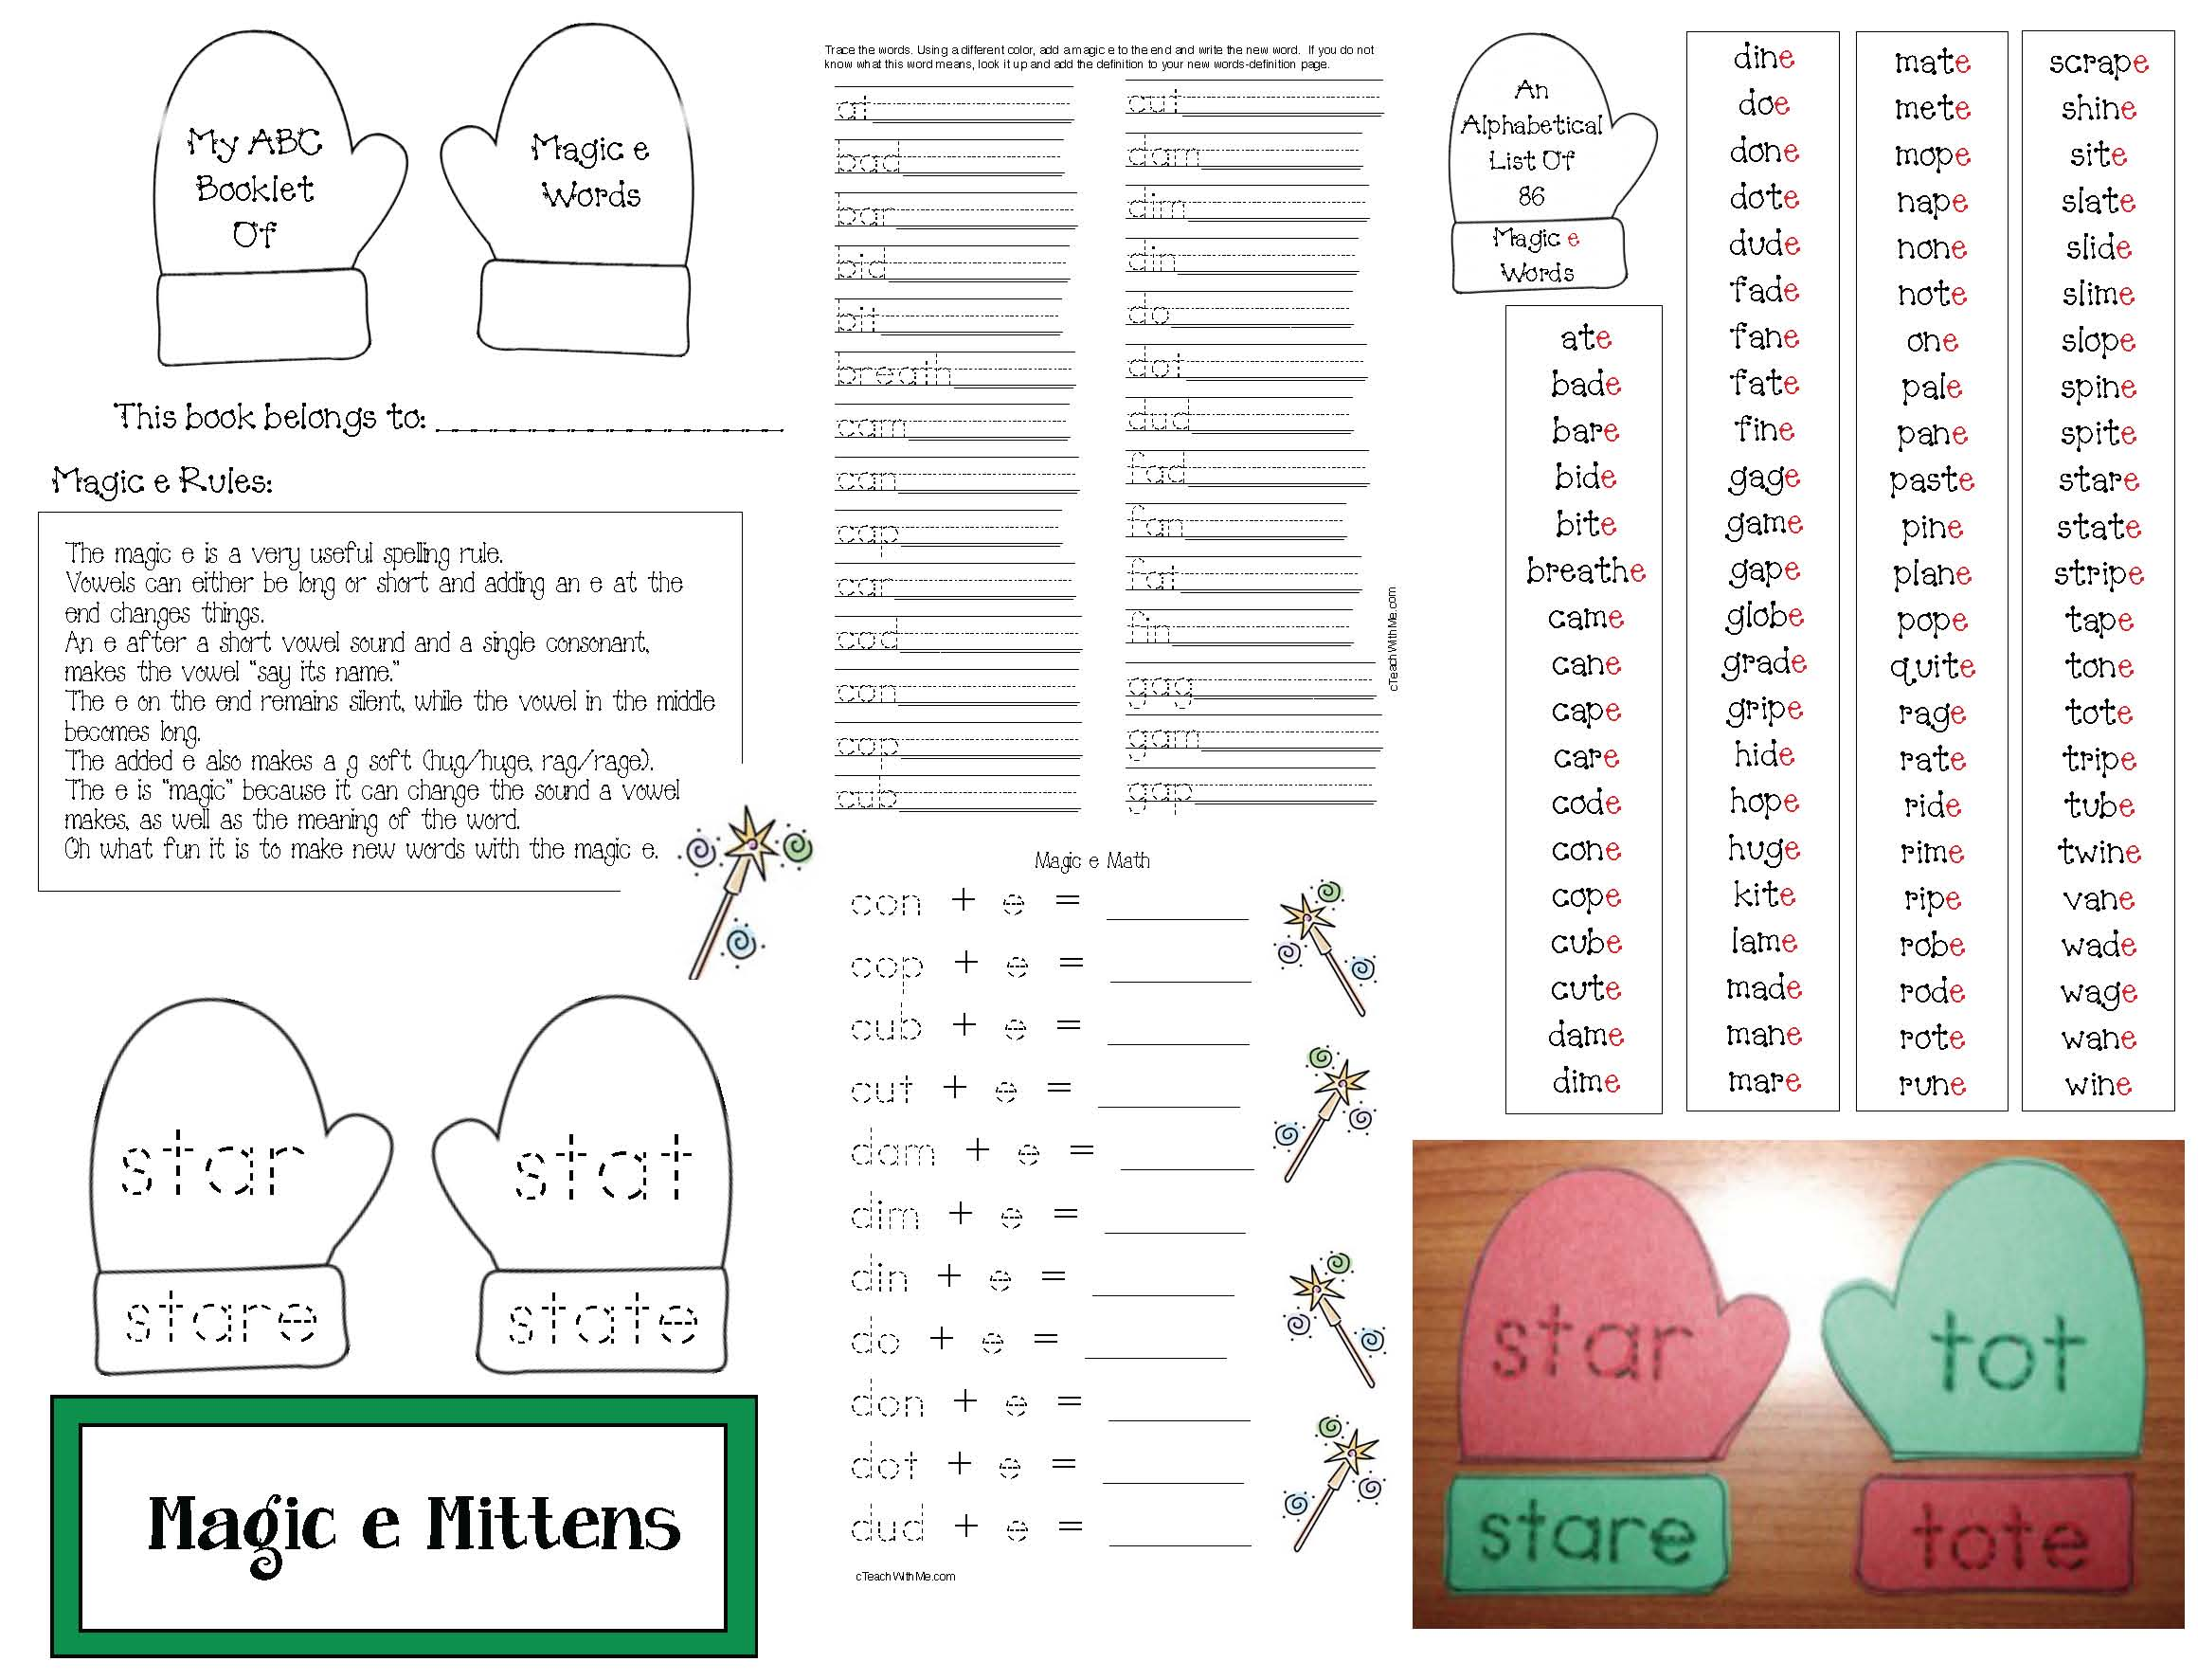 graphic organizers, mitten themed graphic organizers, mitten crafts, mitten activities, magic e activities, silent e activities, list of silent e activies, magic e poster, magic e rules, silent e rules, adjective activities, verb activities, mitten themed writing,